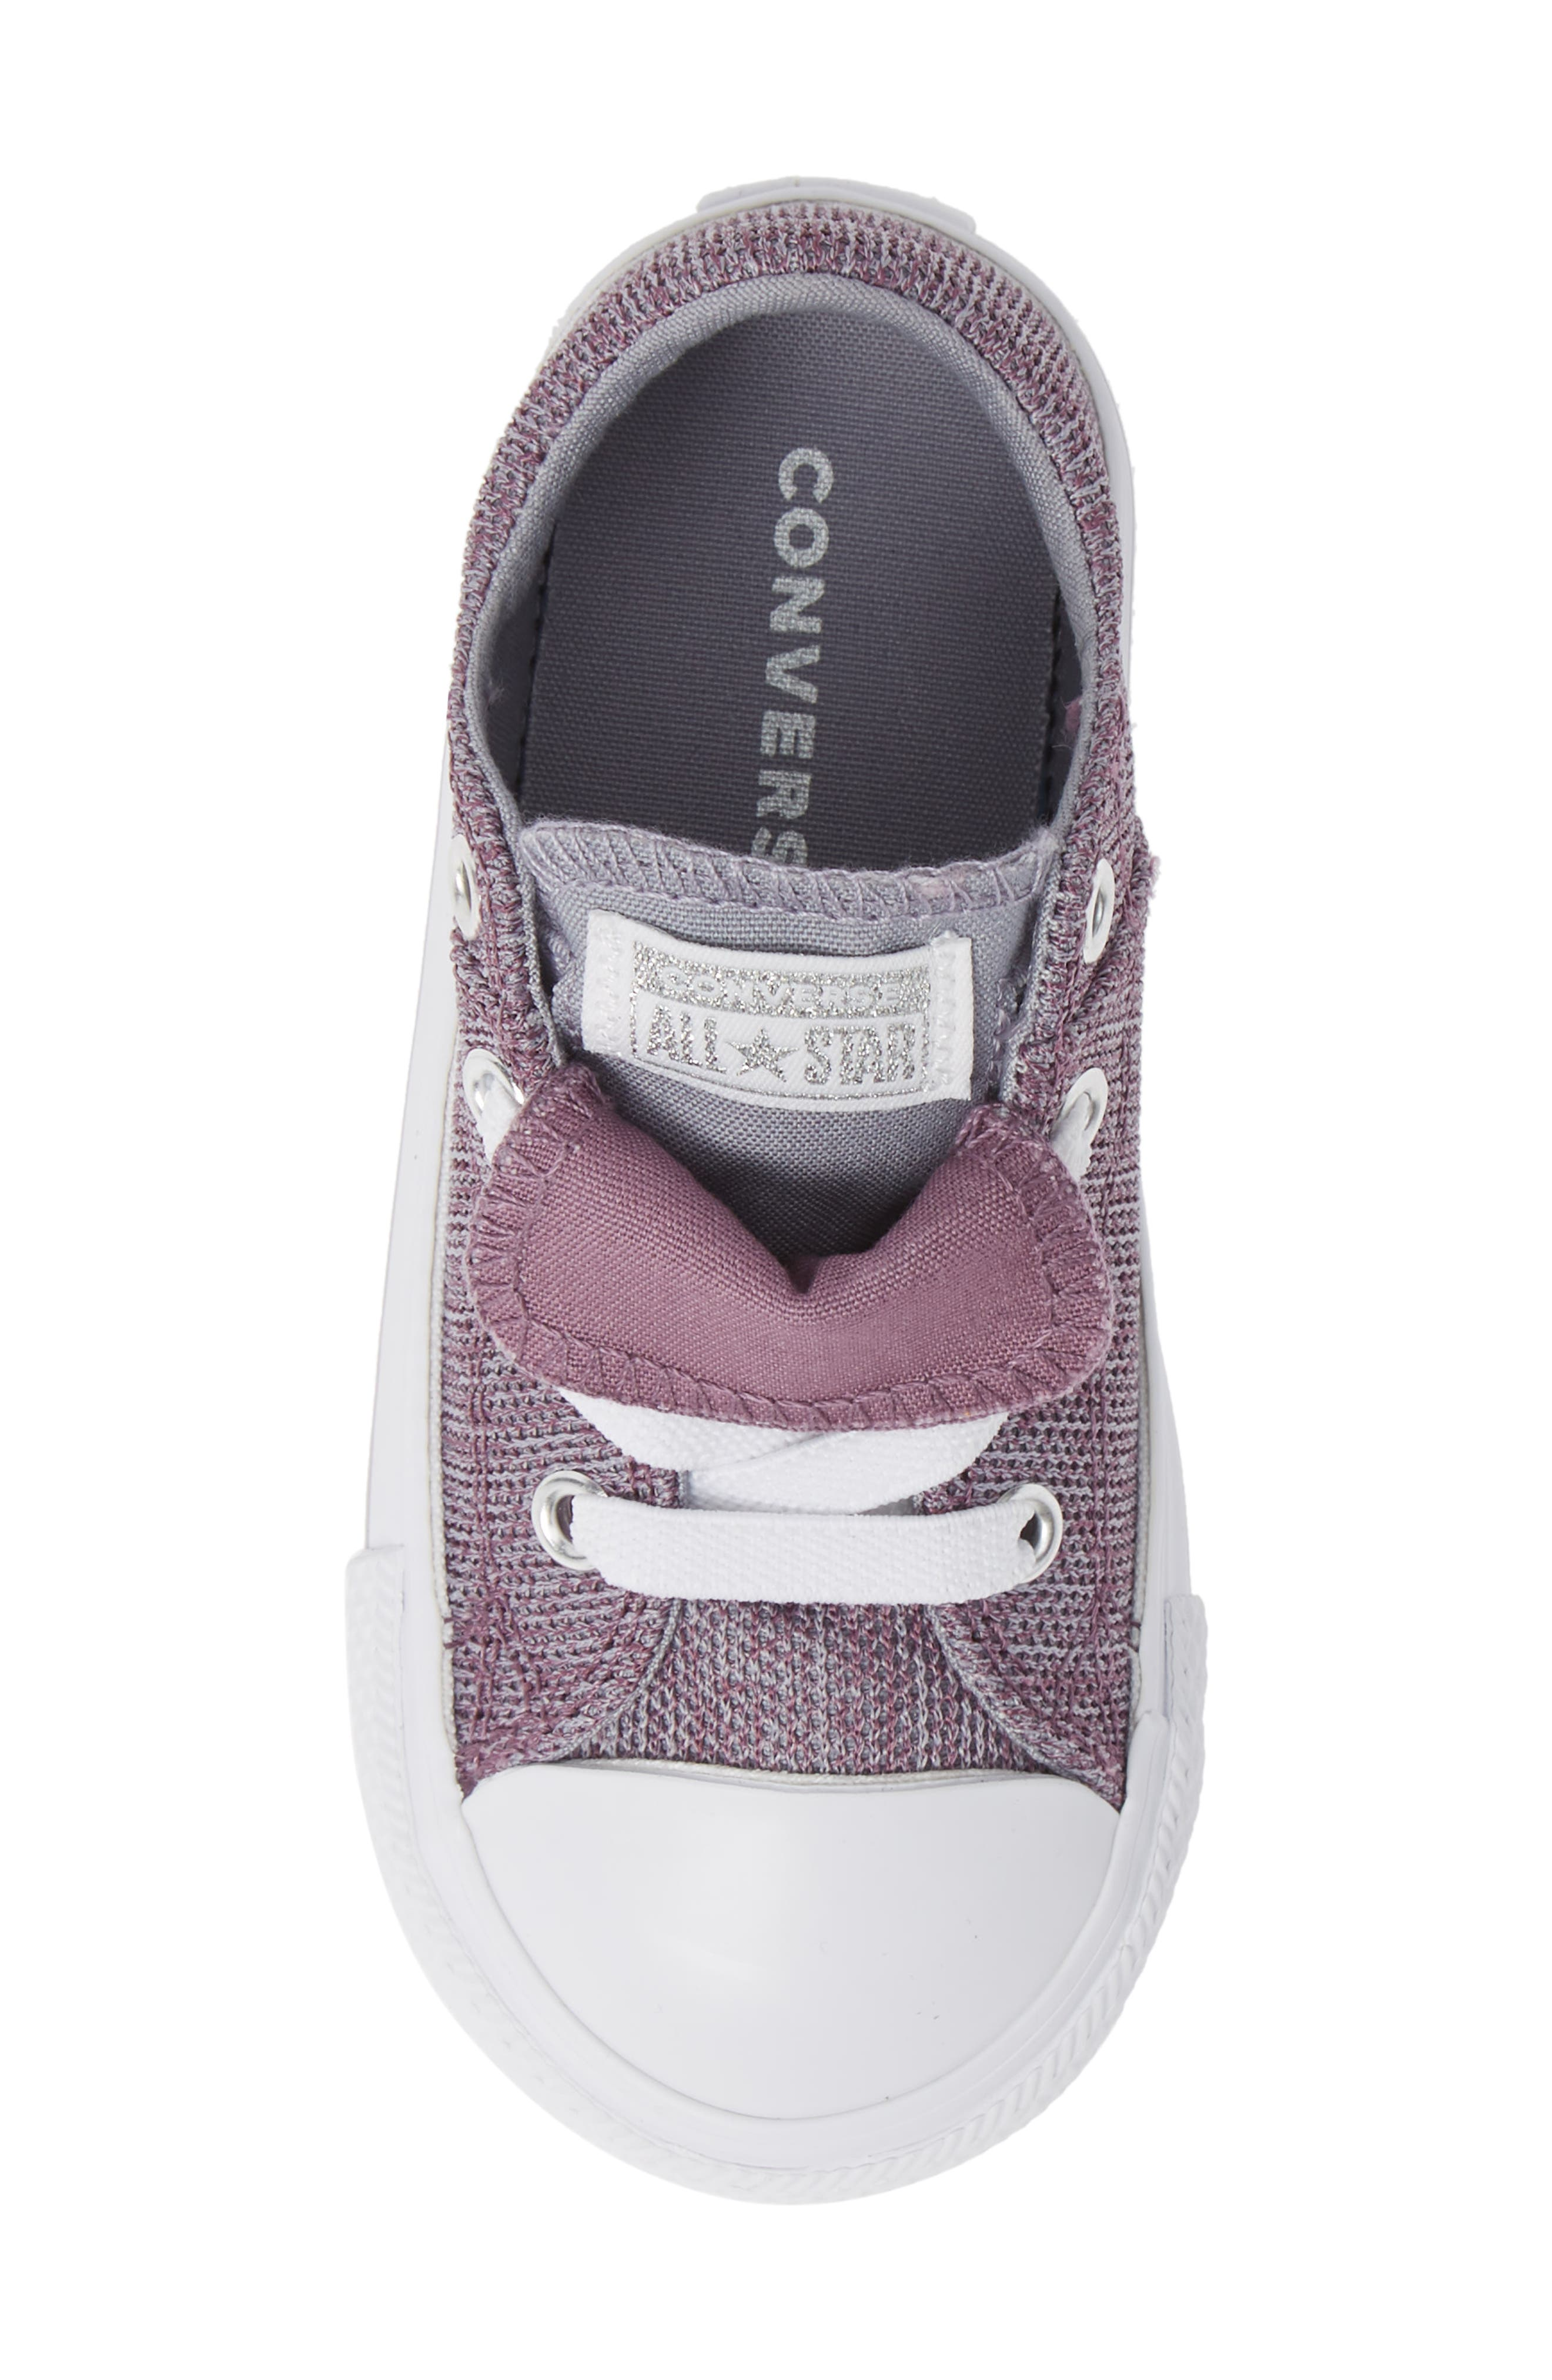 ,                             Chuck Taylor<sup>®</sup> All Star<sup>®</sup> Maddie Double Tongue Sneaker,                             Alternate thumbnail 47, color,                             501